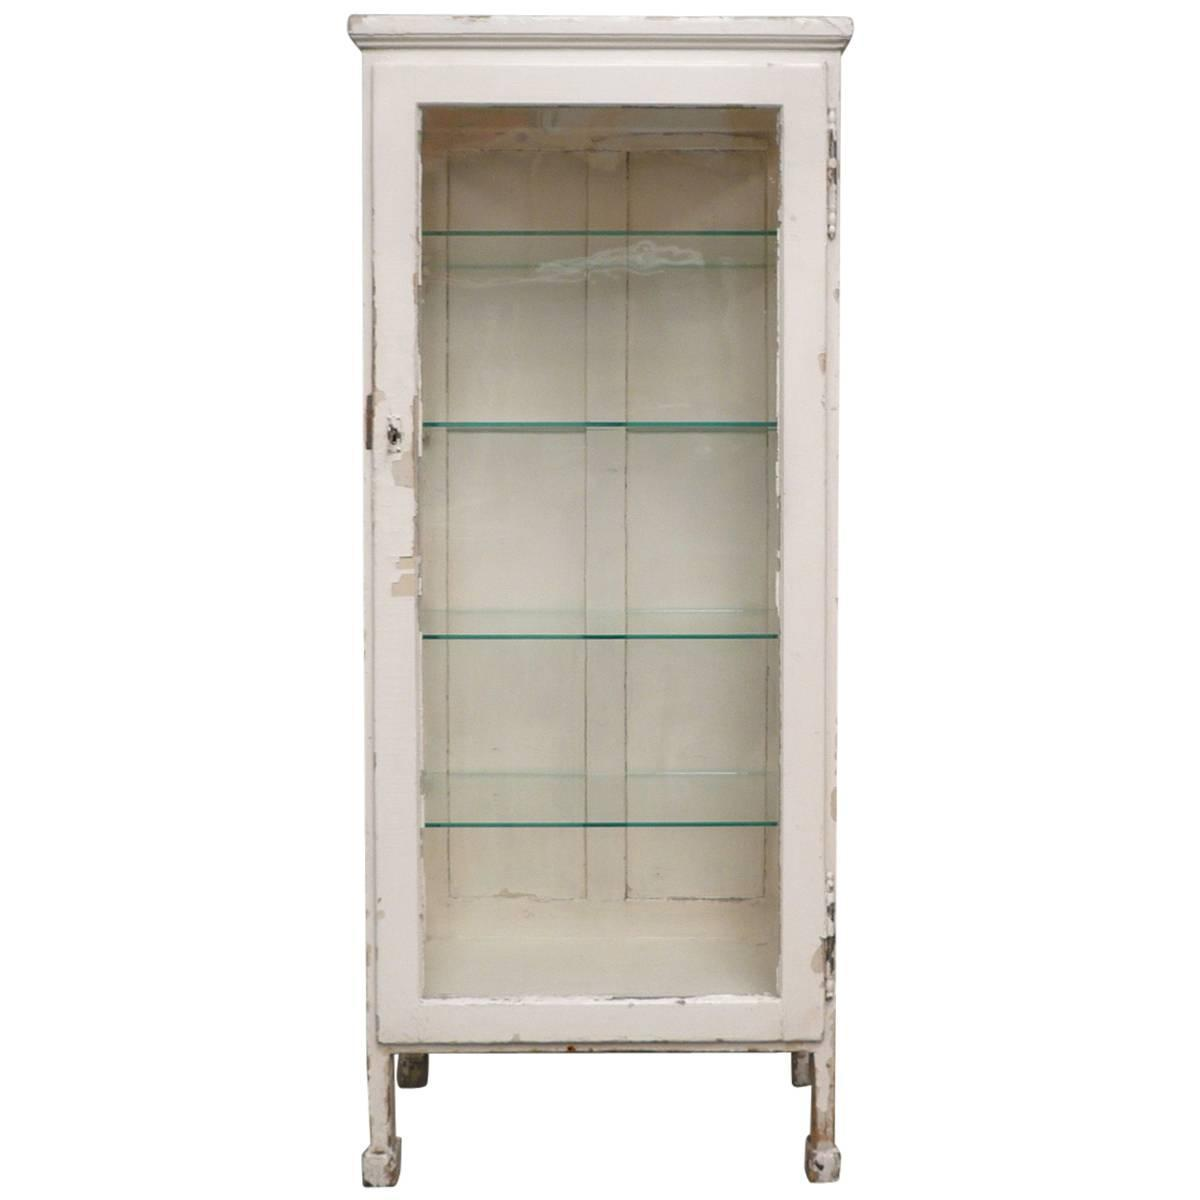 Vintage Hungarian Wood and Glass Medicine Cabinet, 1930s at 1stdibs